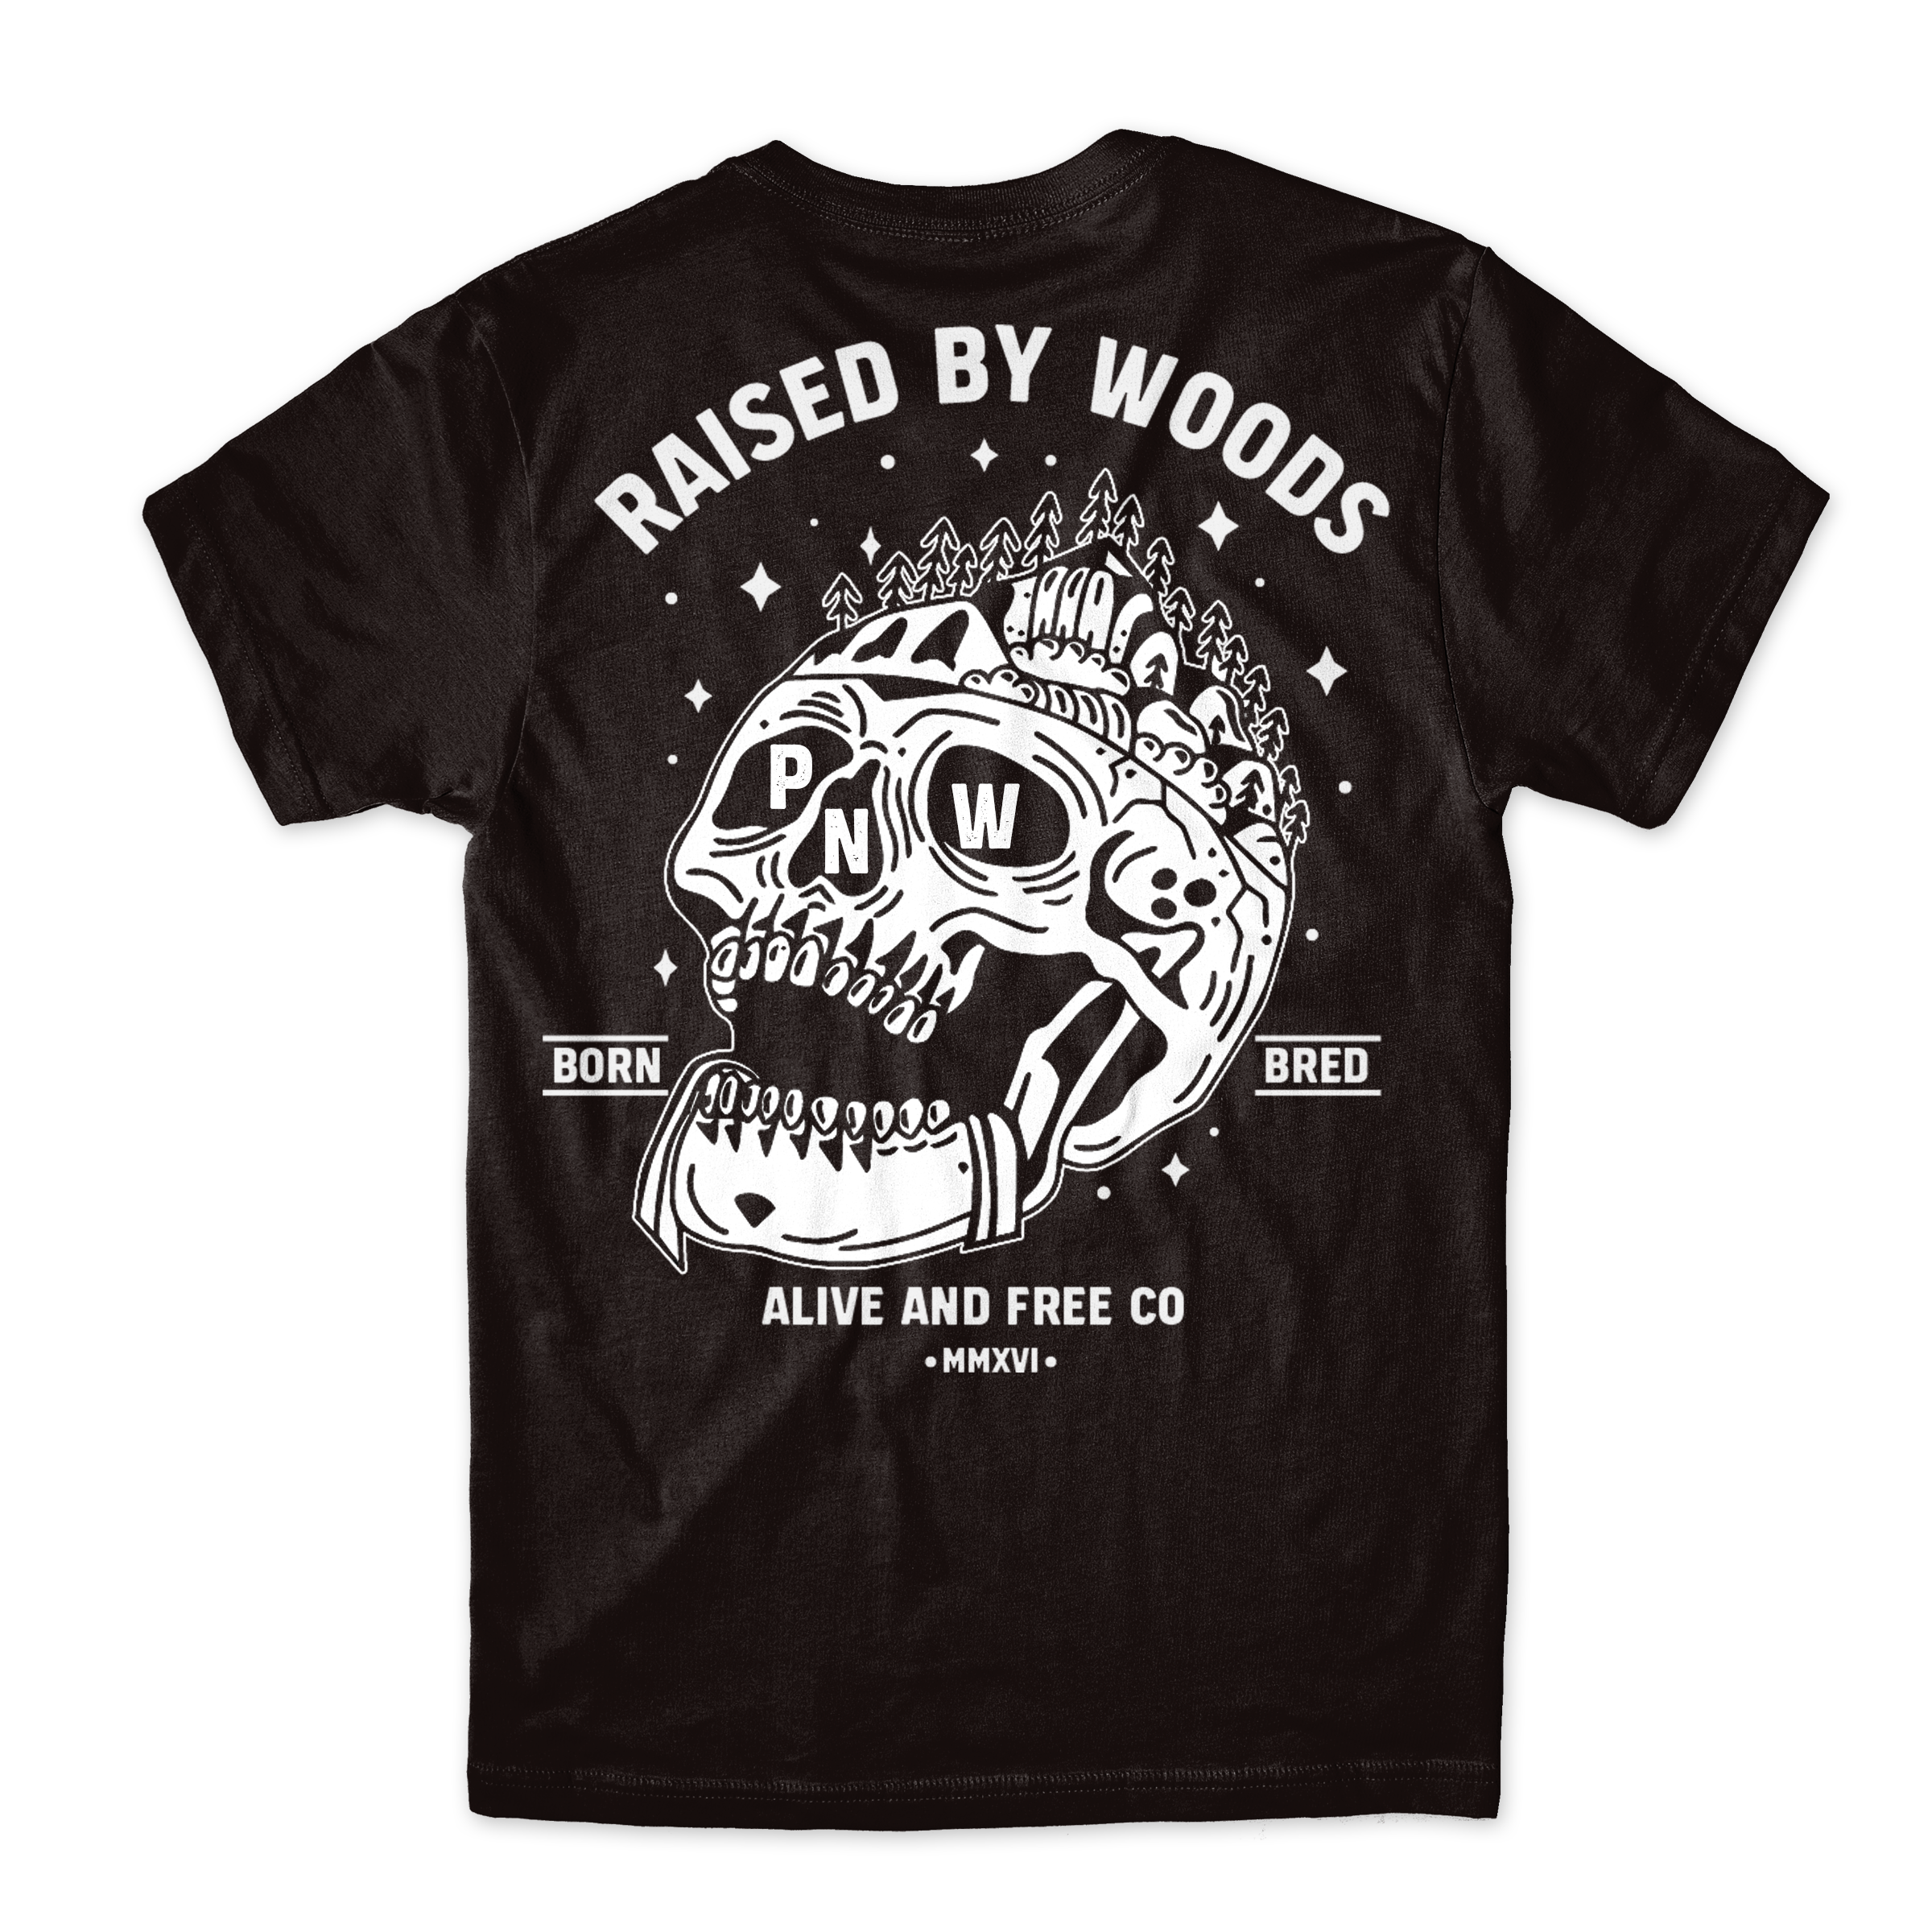 """Raised By Woods"" Tee"